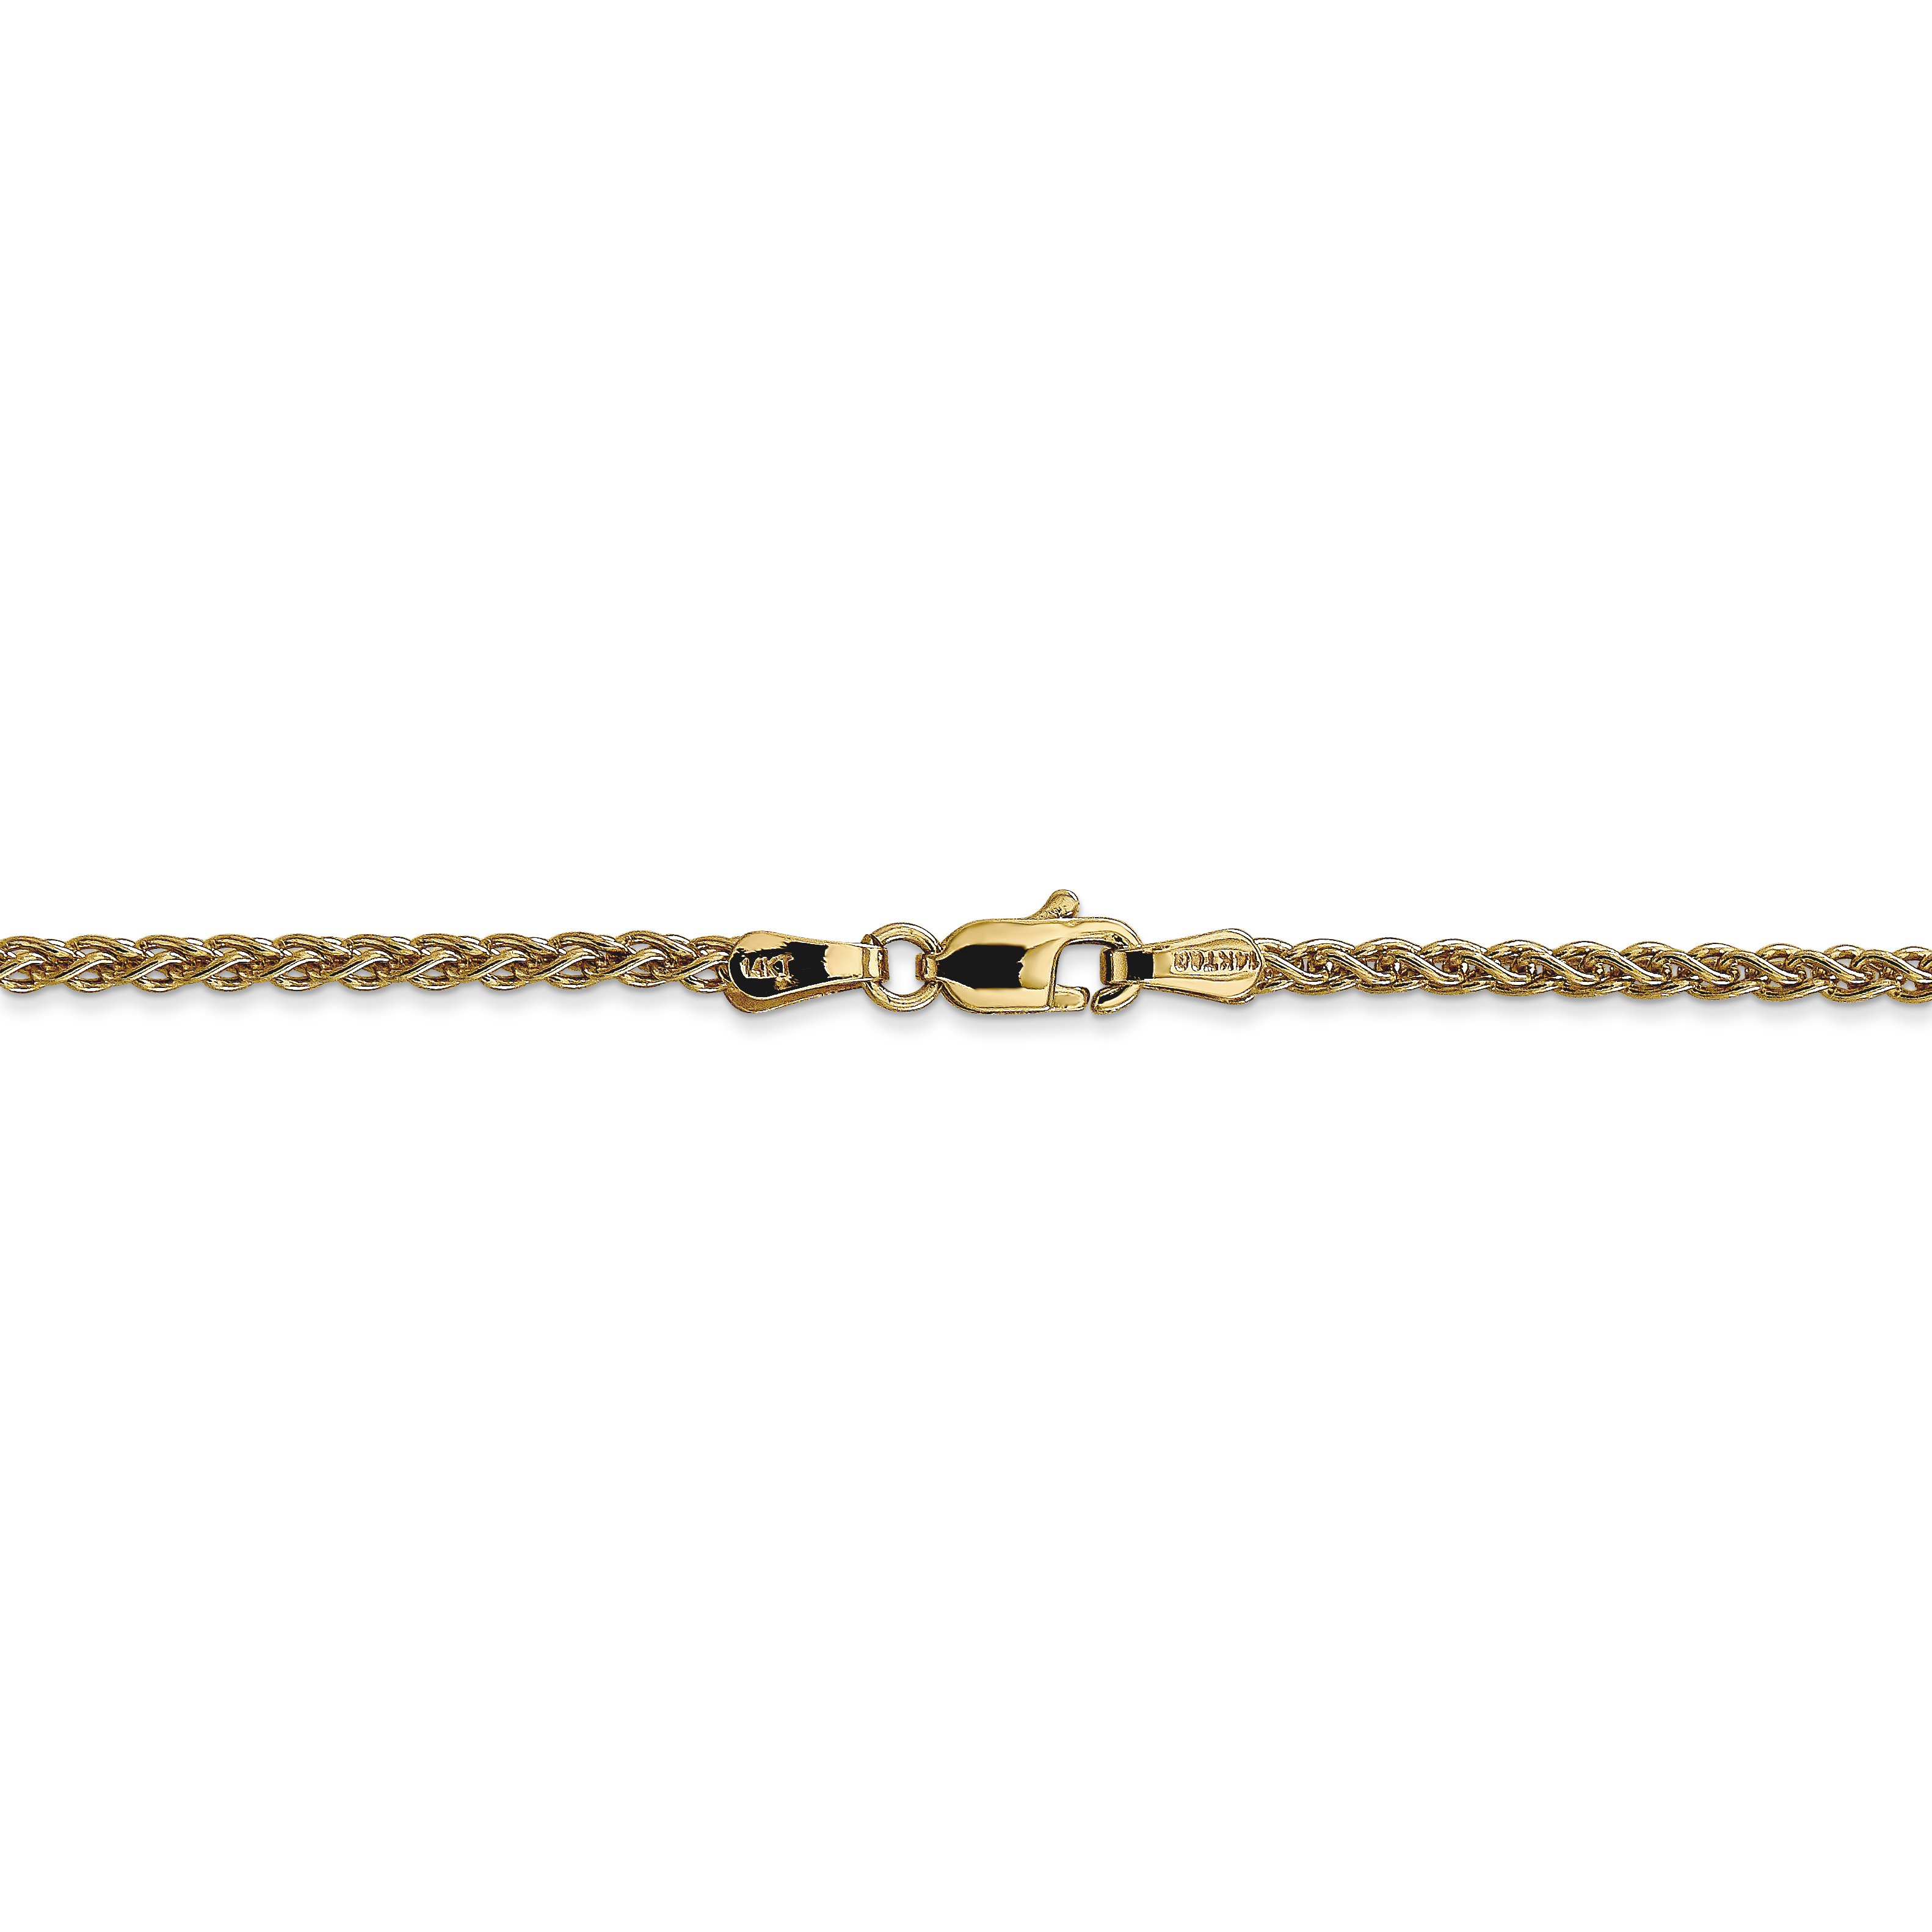 14k Yellow Gold 2mm Spiga Chain Necklace 30 Inch Pendant Charm Wheat Fine Jewelry Gifts For Women For Her - image 3 of 5